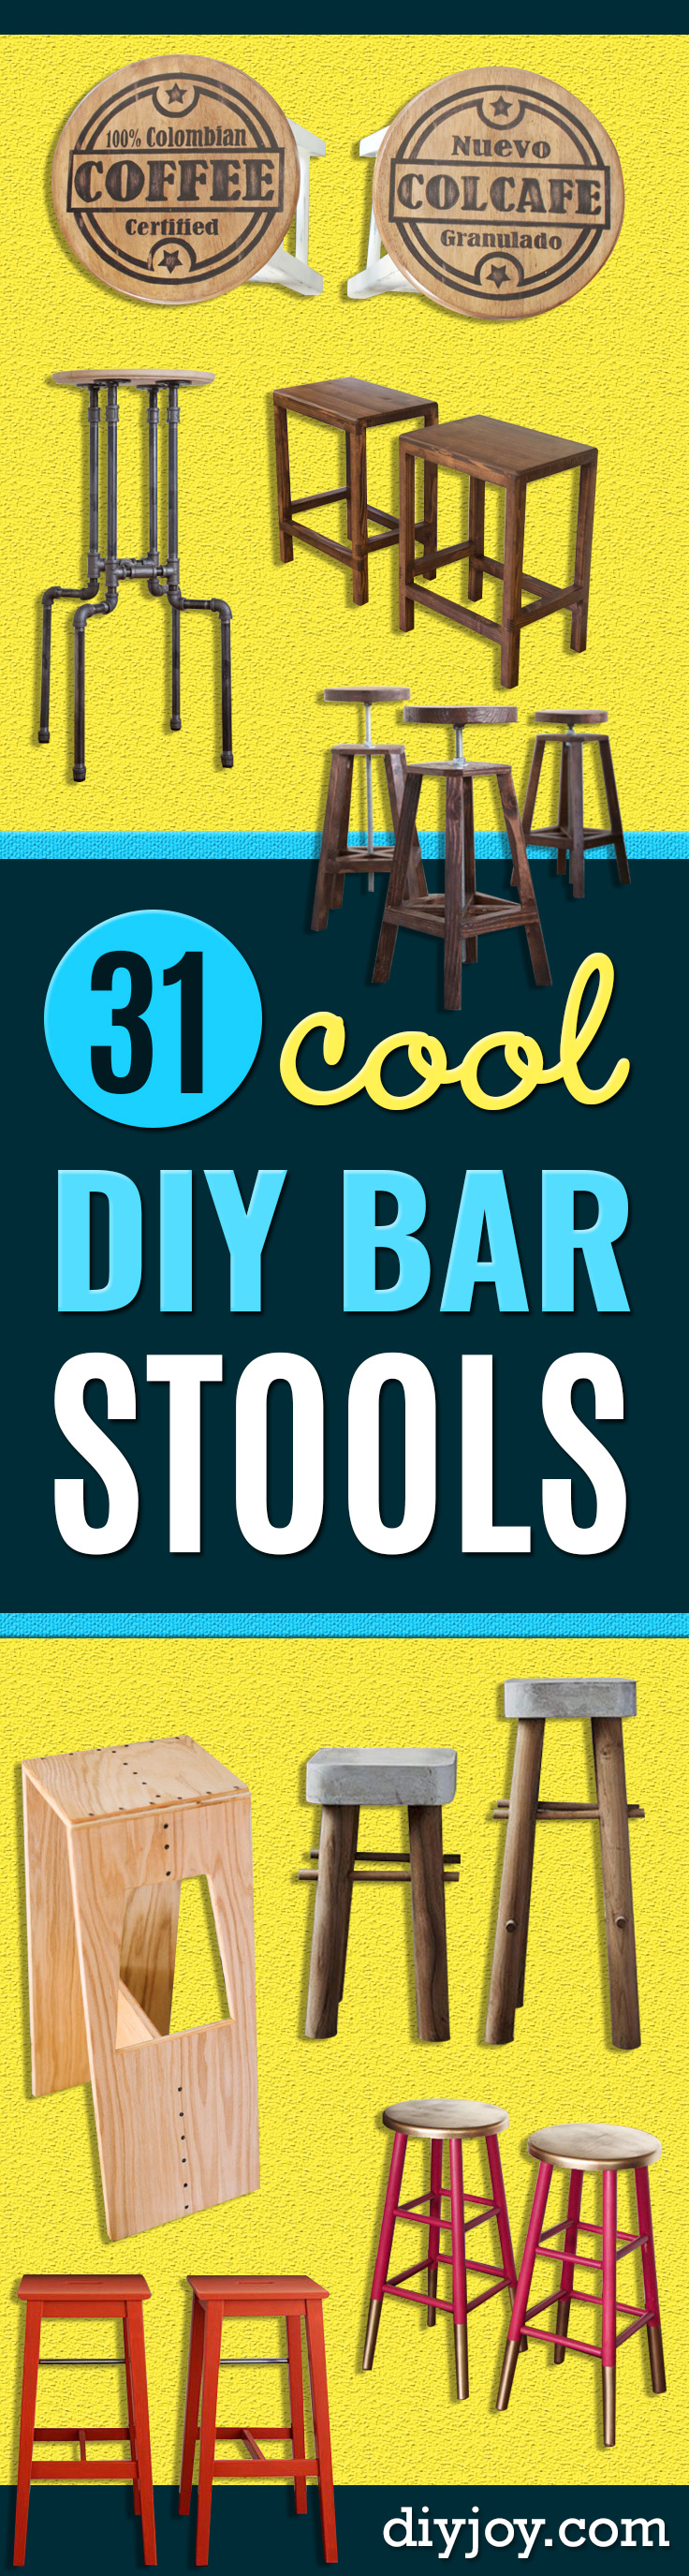 diy barstools - easy diy bar stools -cheap Ideas for Seating and Creative Home Decor - Do It Yourself Bar Stools for Modern, Rustic, Farmhouse, Shabby Chic, Industrial and Simple Classic Decor - Do It Yourself Dining Room Seating Complete With Step by Step Tutorials